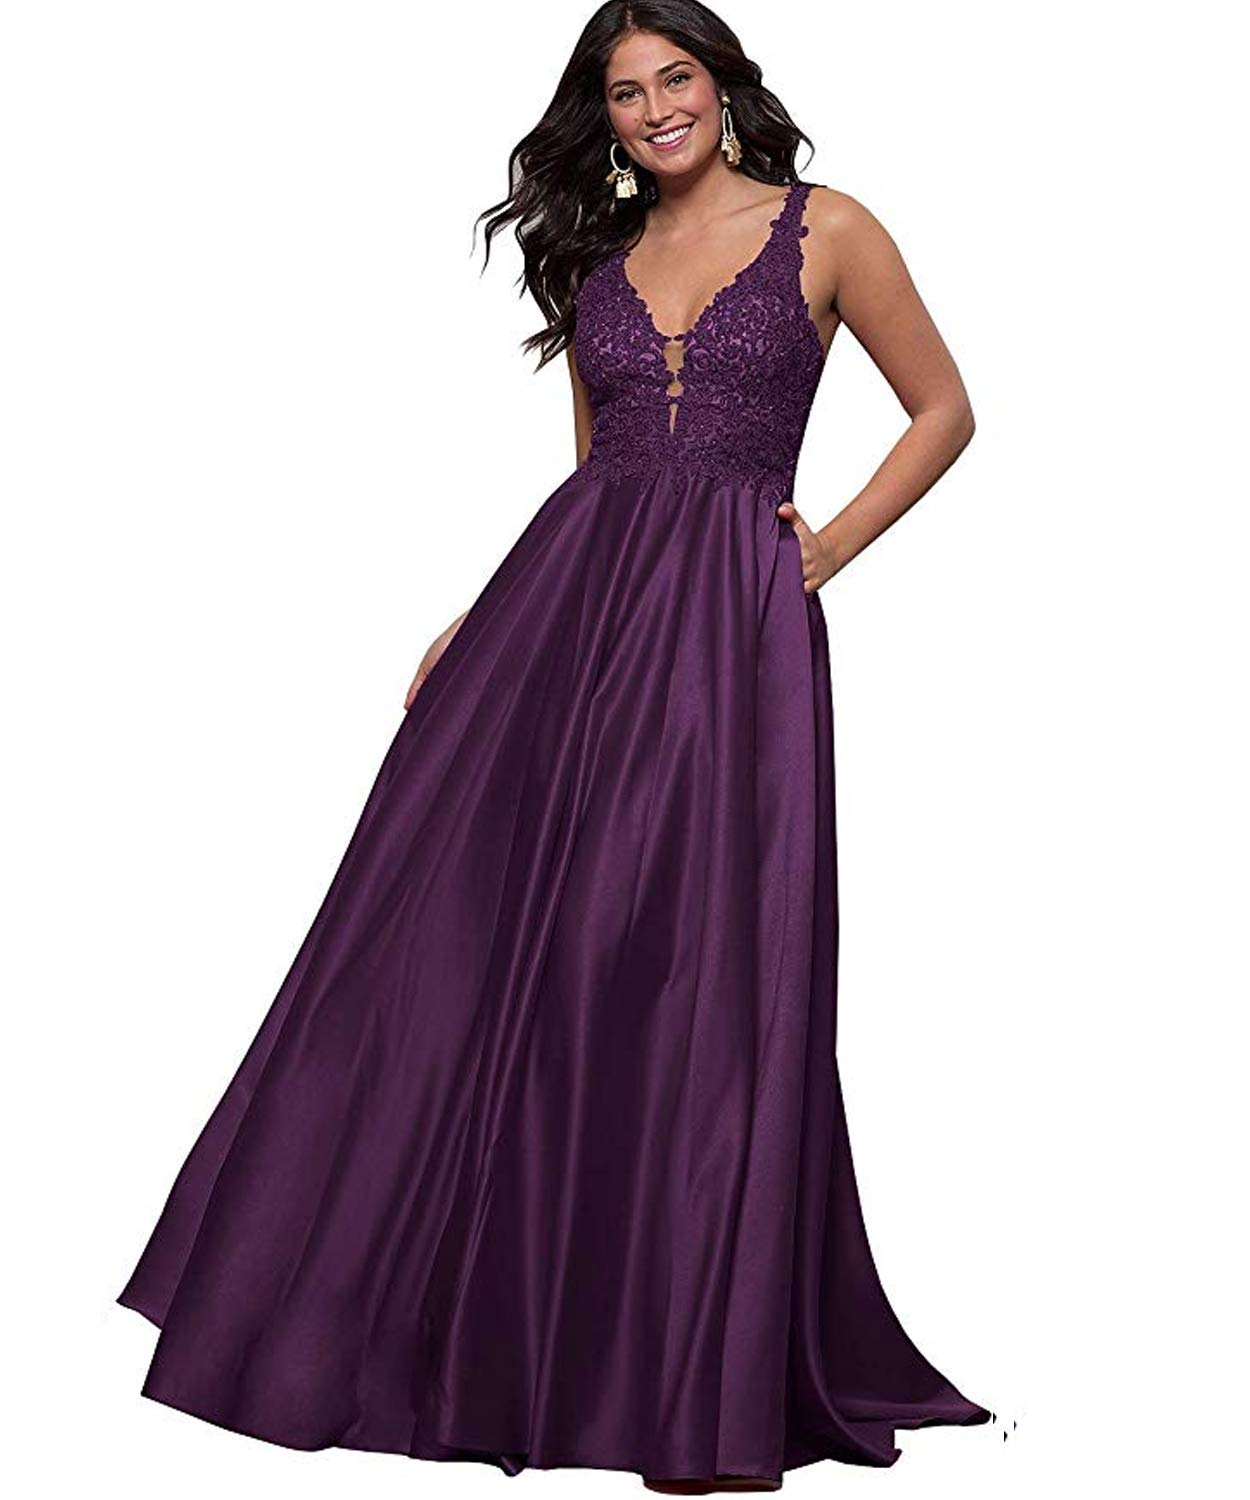 Stylefun Women's Prom Dresses A Line Long Lace V Neck Satin Formal Evening Gowns with Pockets HD29